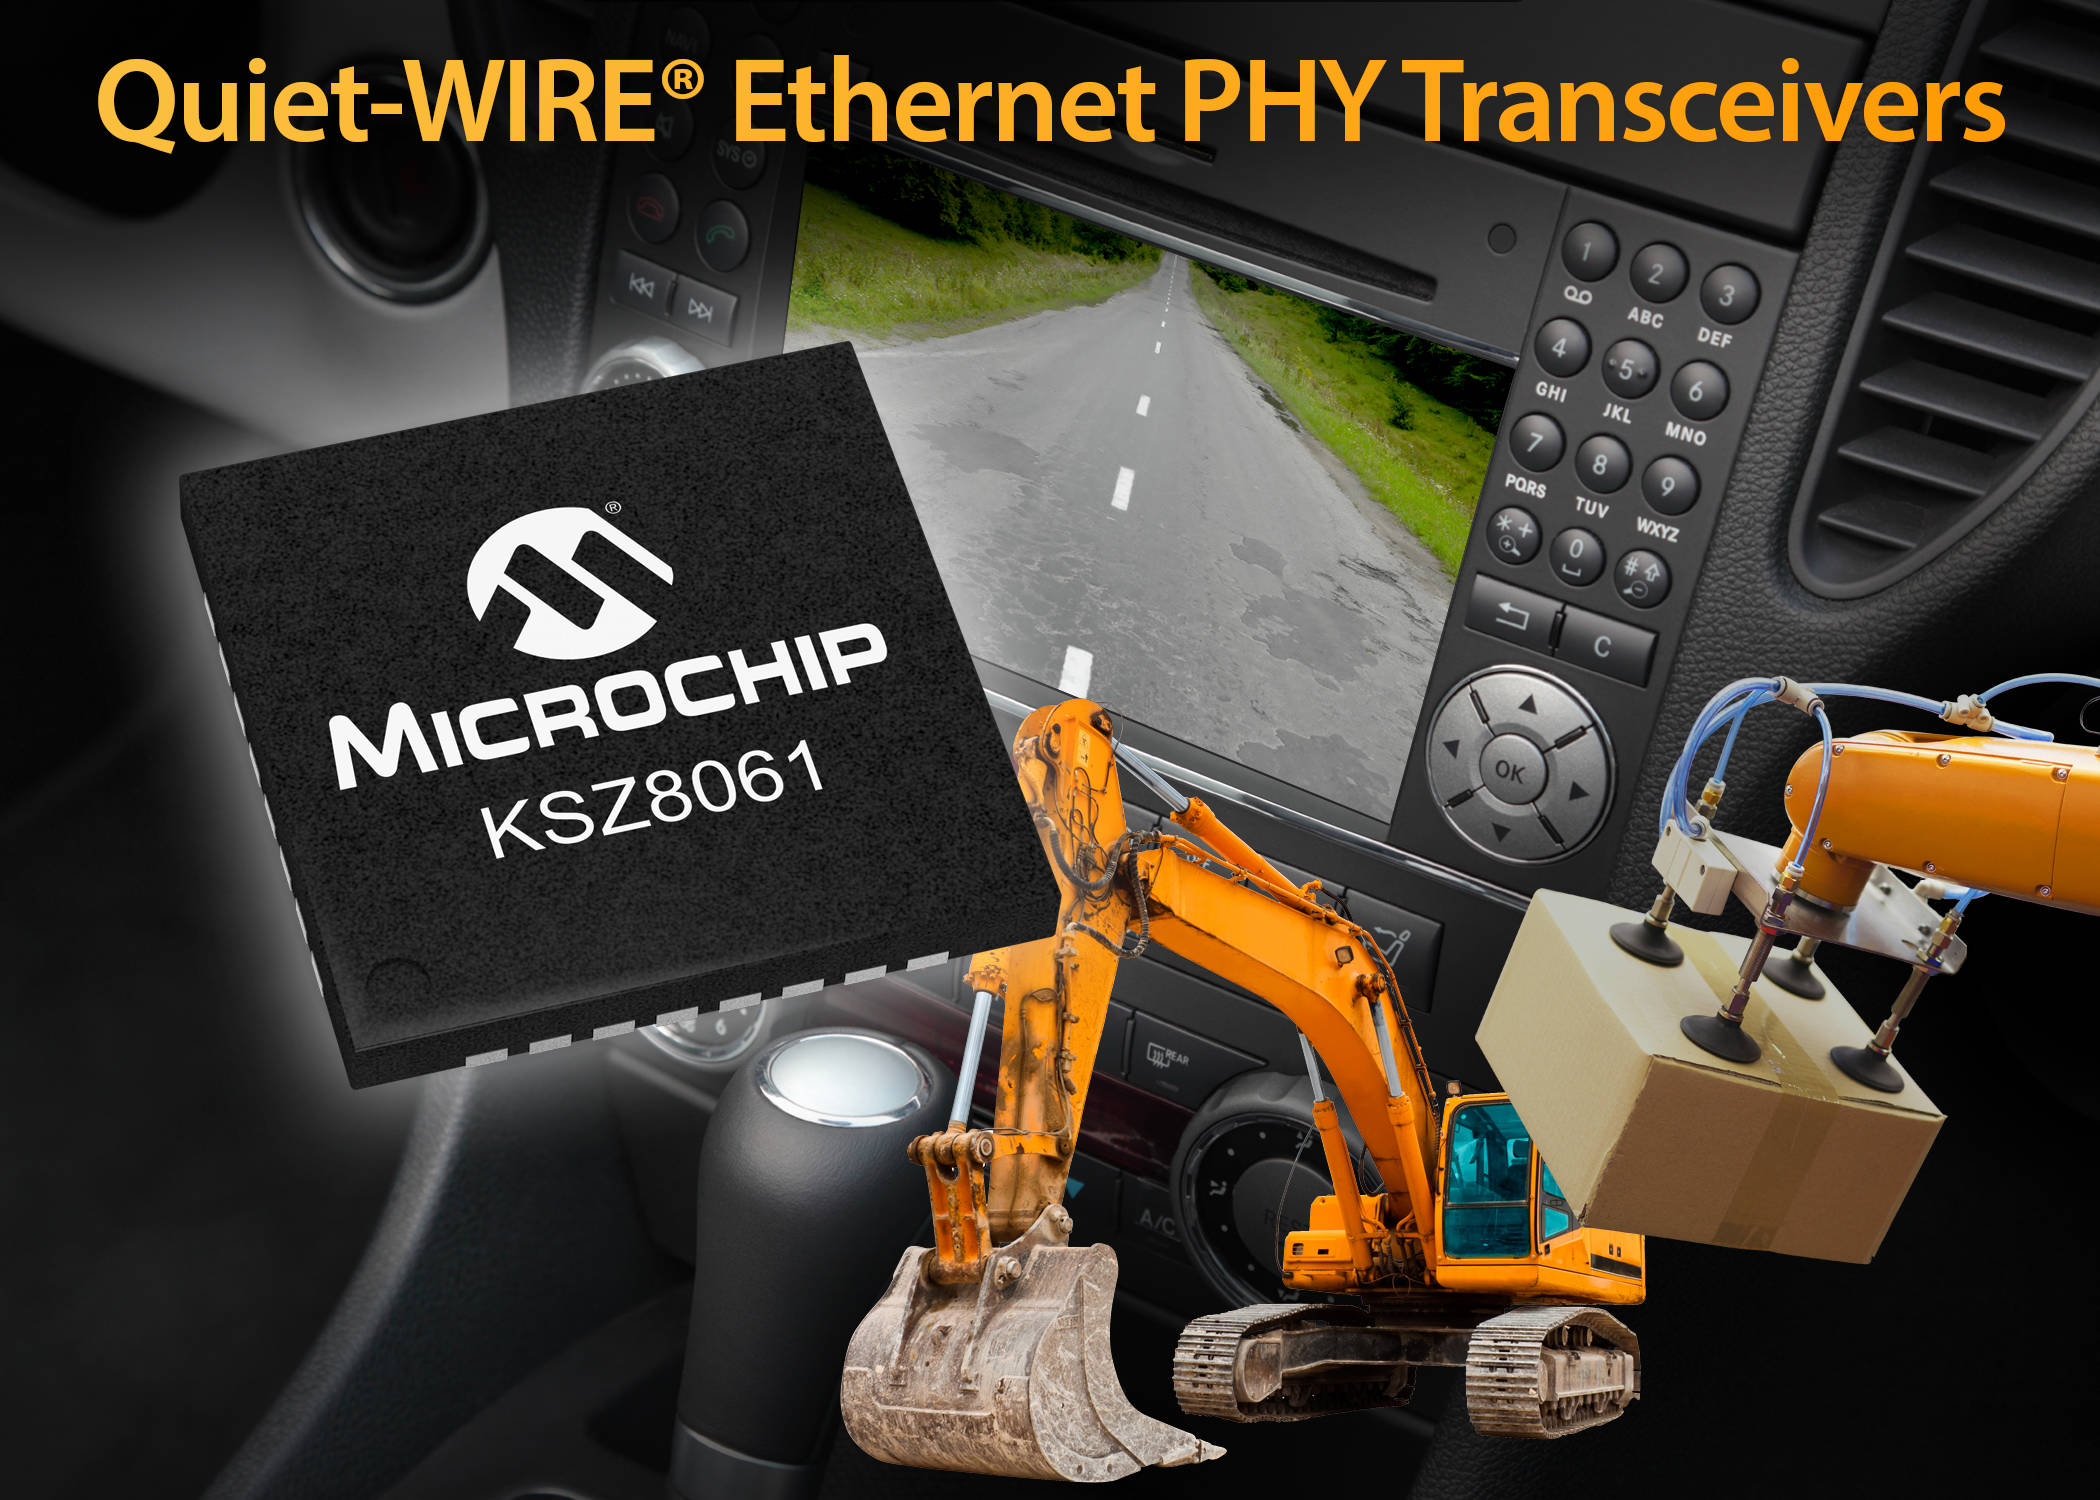 Microchip Ethernet PHY Transceiver Enables Unshielded Twisted Pair